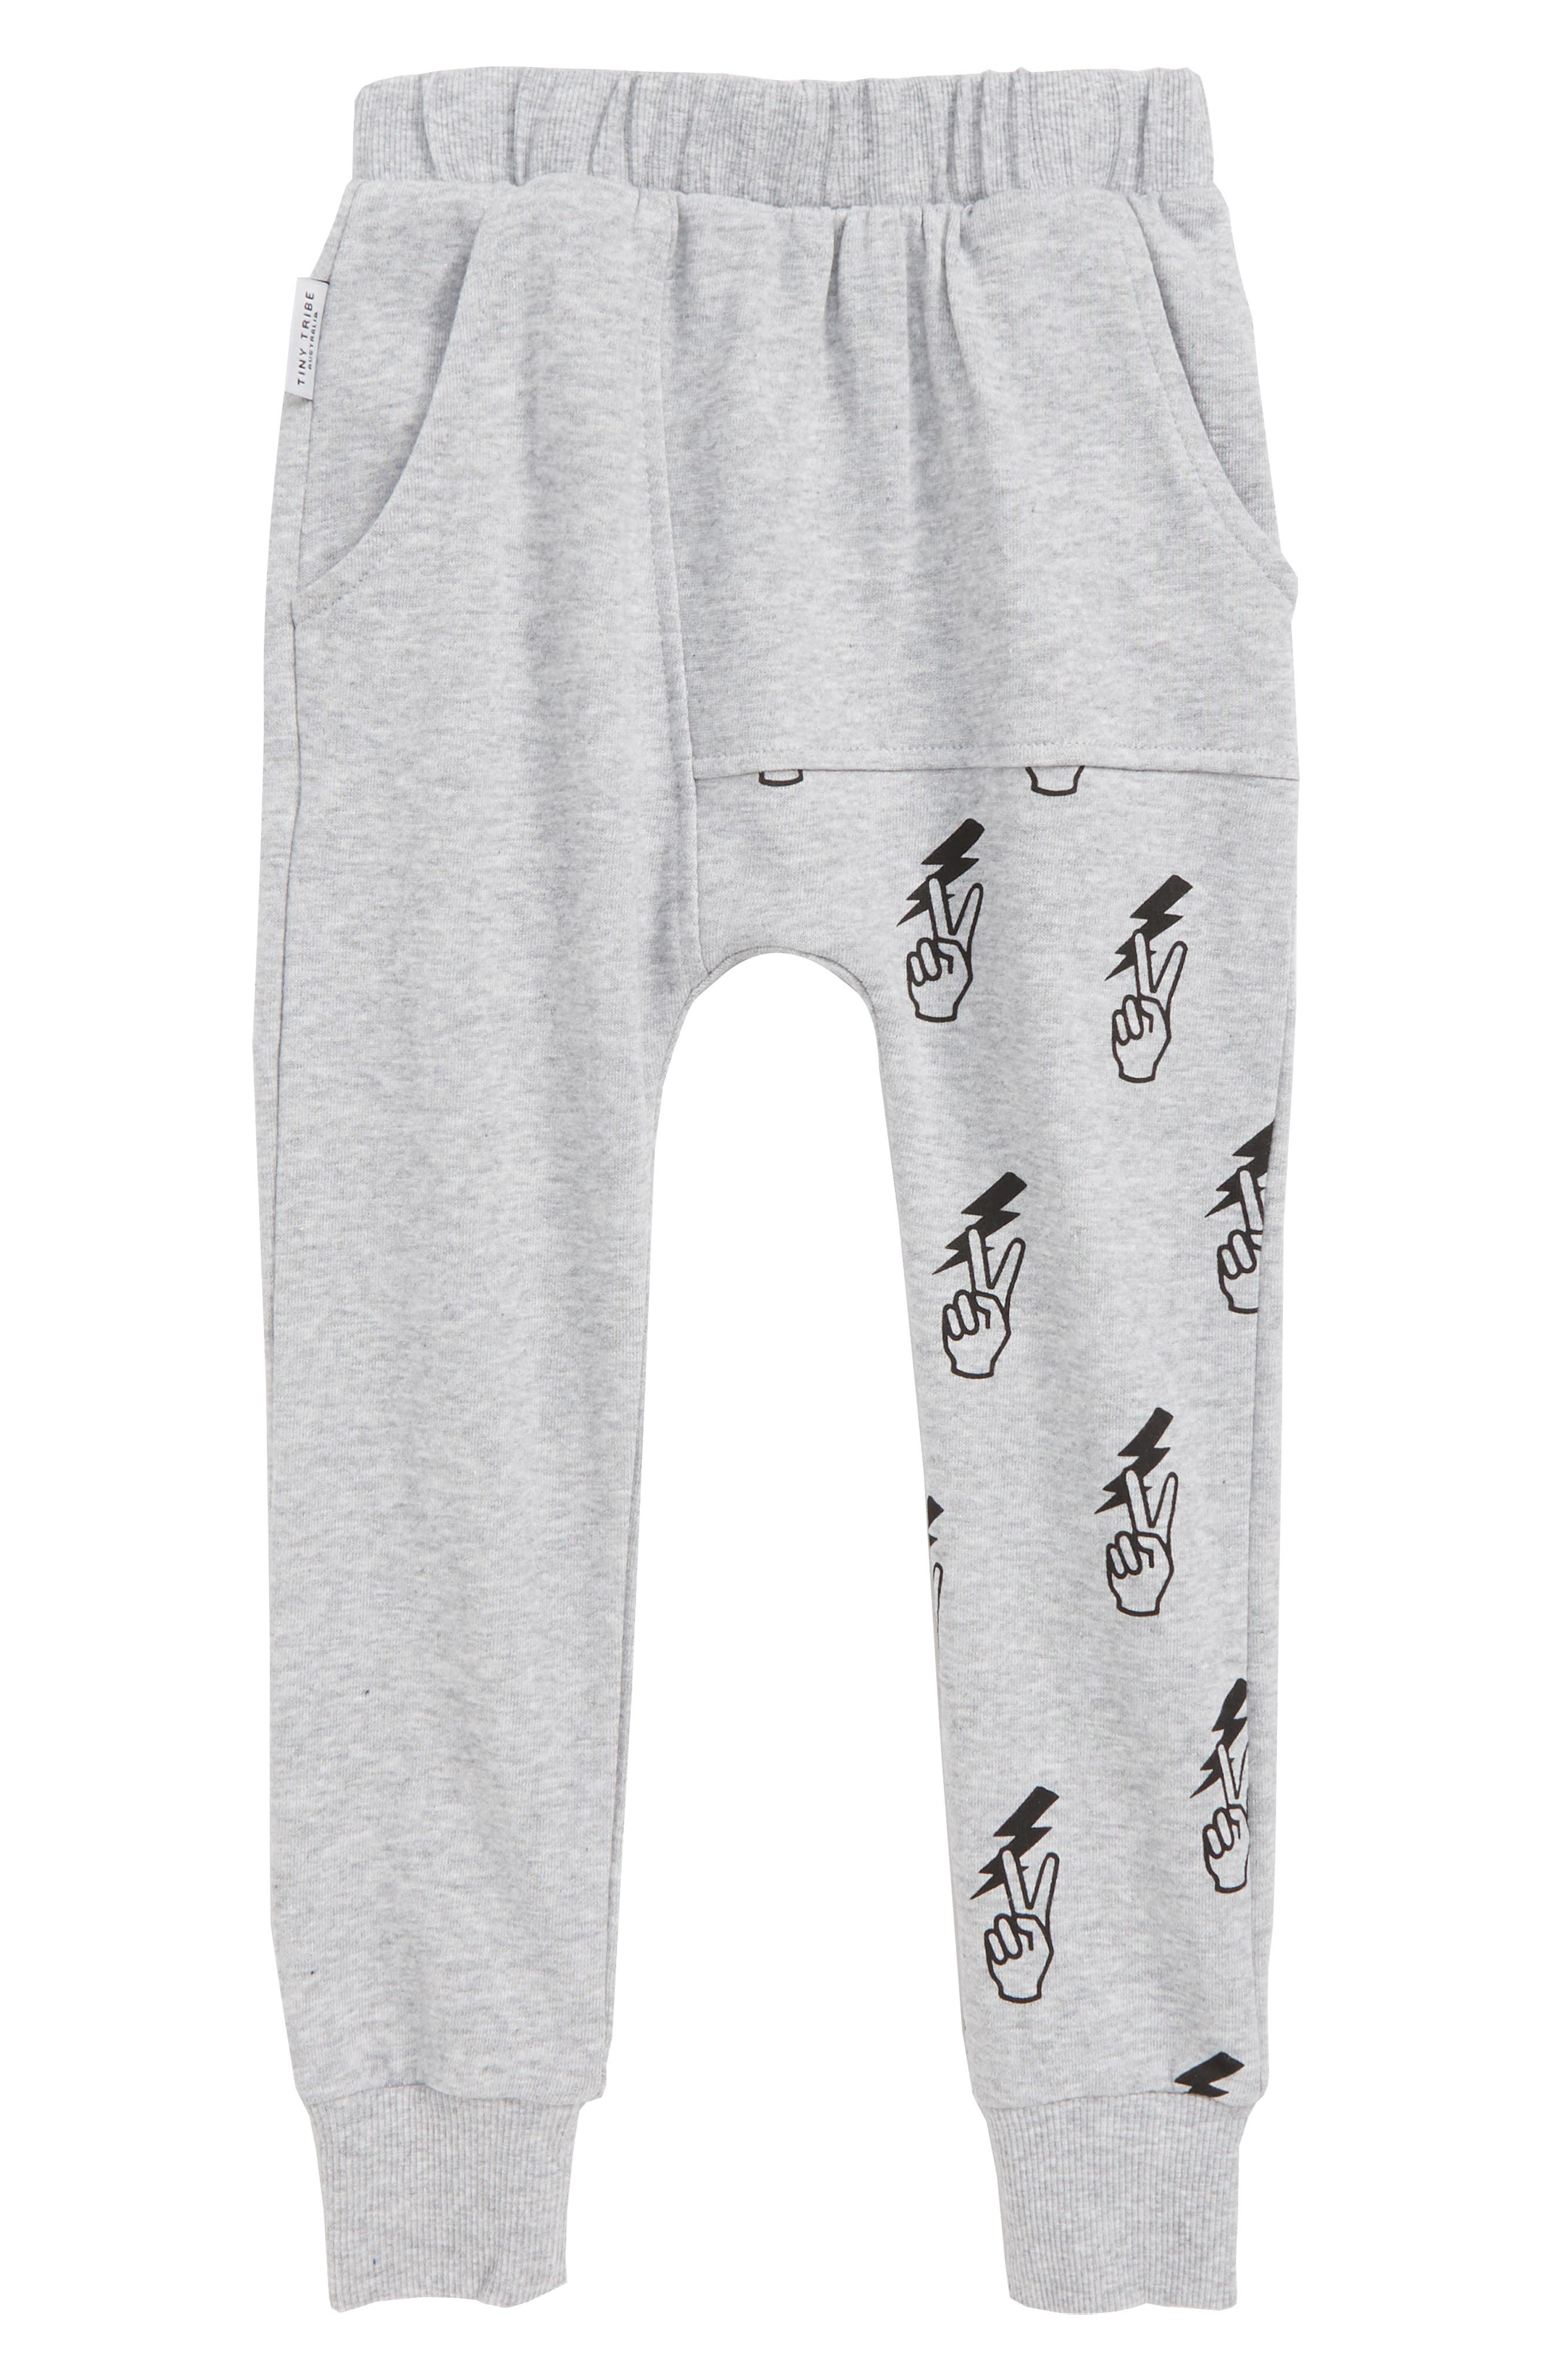 Peace Sweatpants,                             Main thumbnail 1, color,                             020